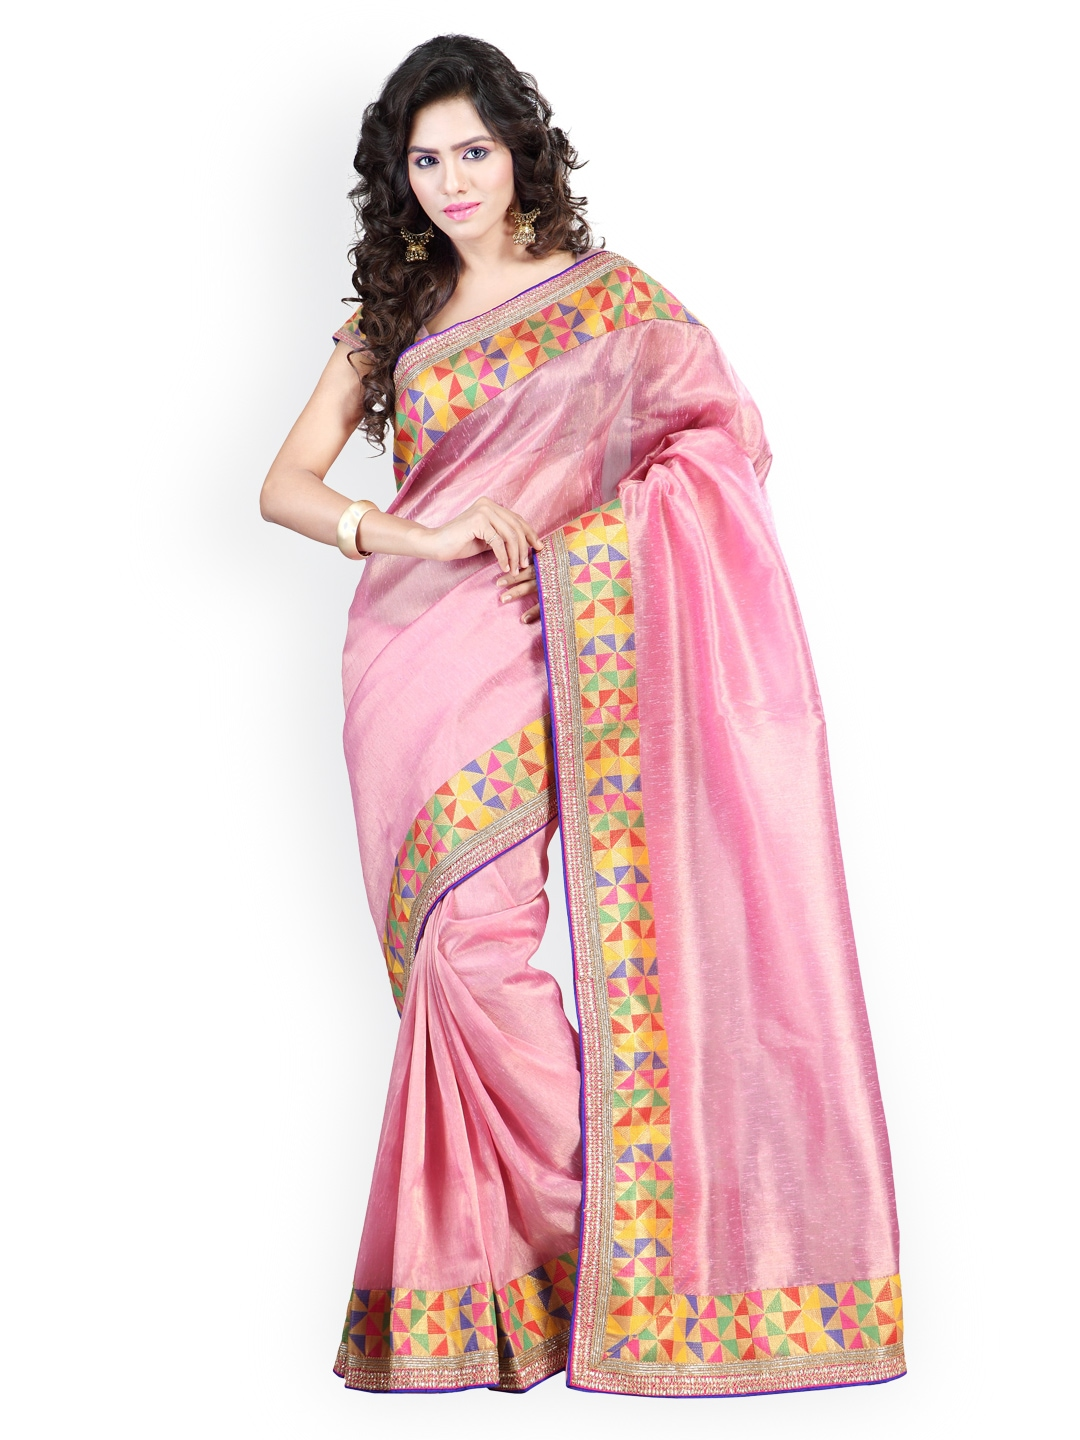 Myntra Kashish Lifestyle Pink Jute Fashion Saree 793739 Buy Myntra Kashish Lifestyle Fashion